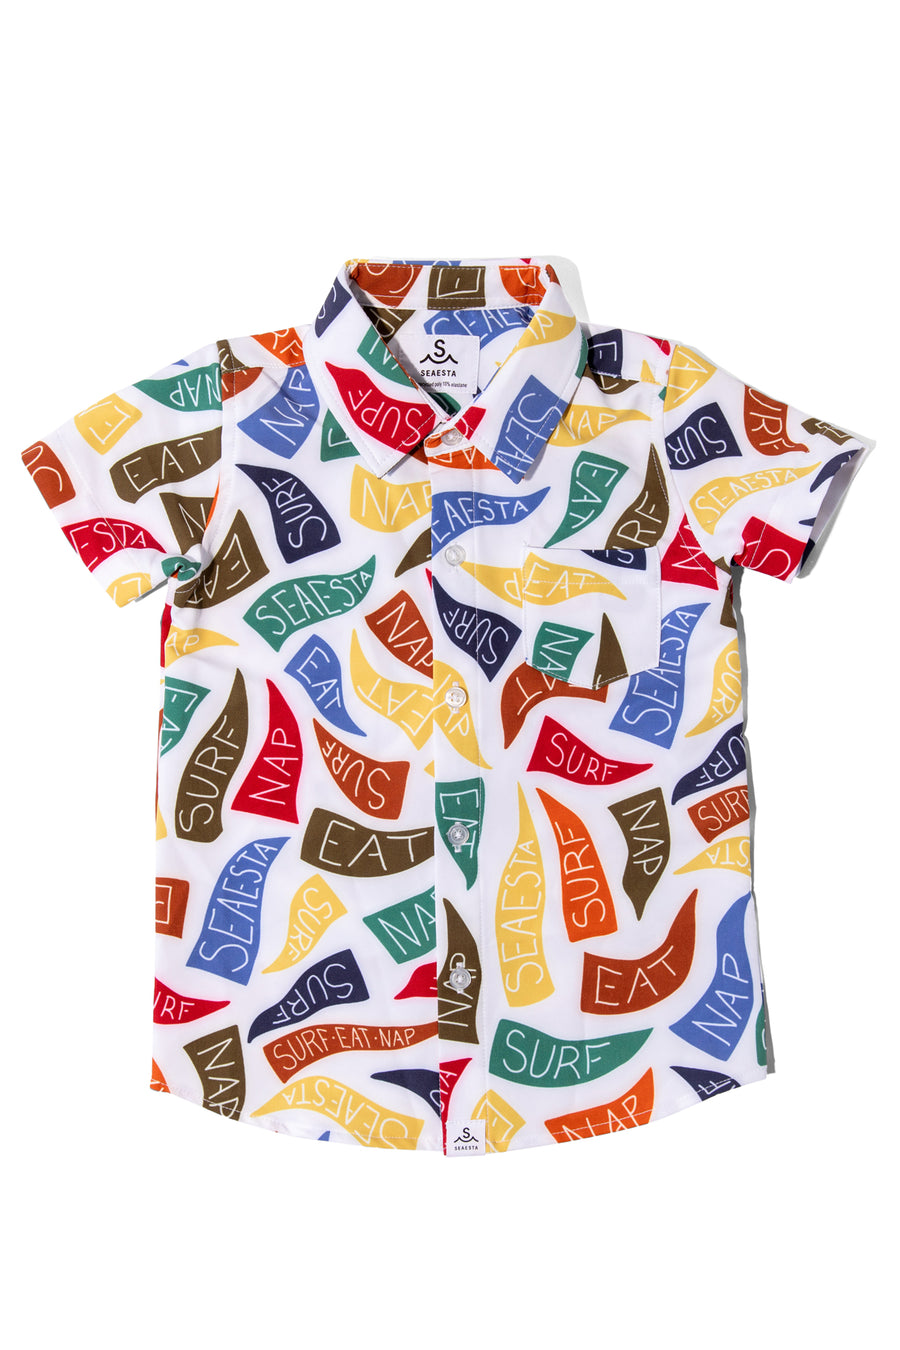 Surf Eat Nap Button Up Shirt | Beach Flags